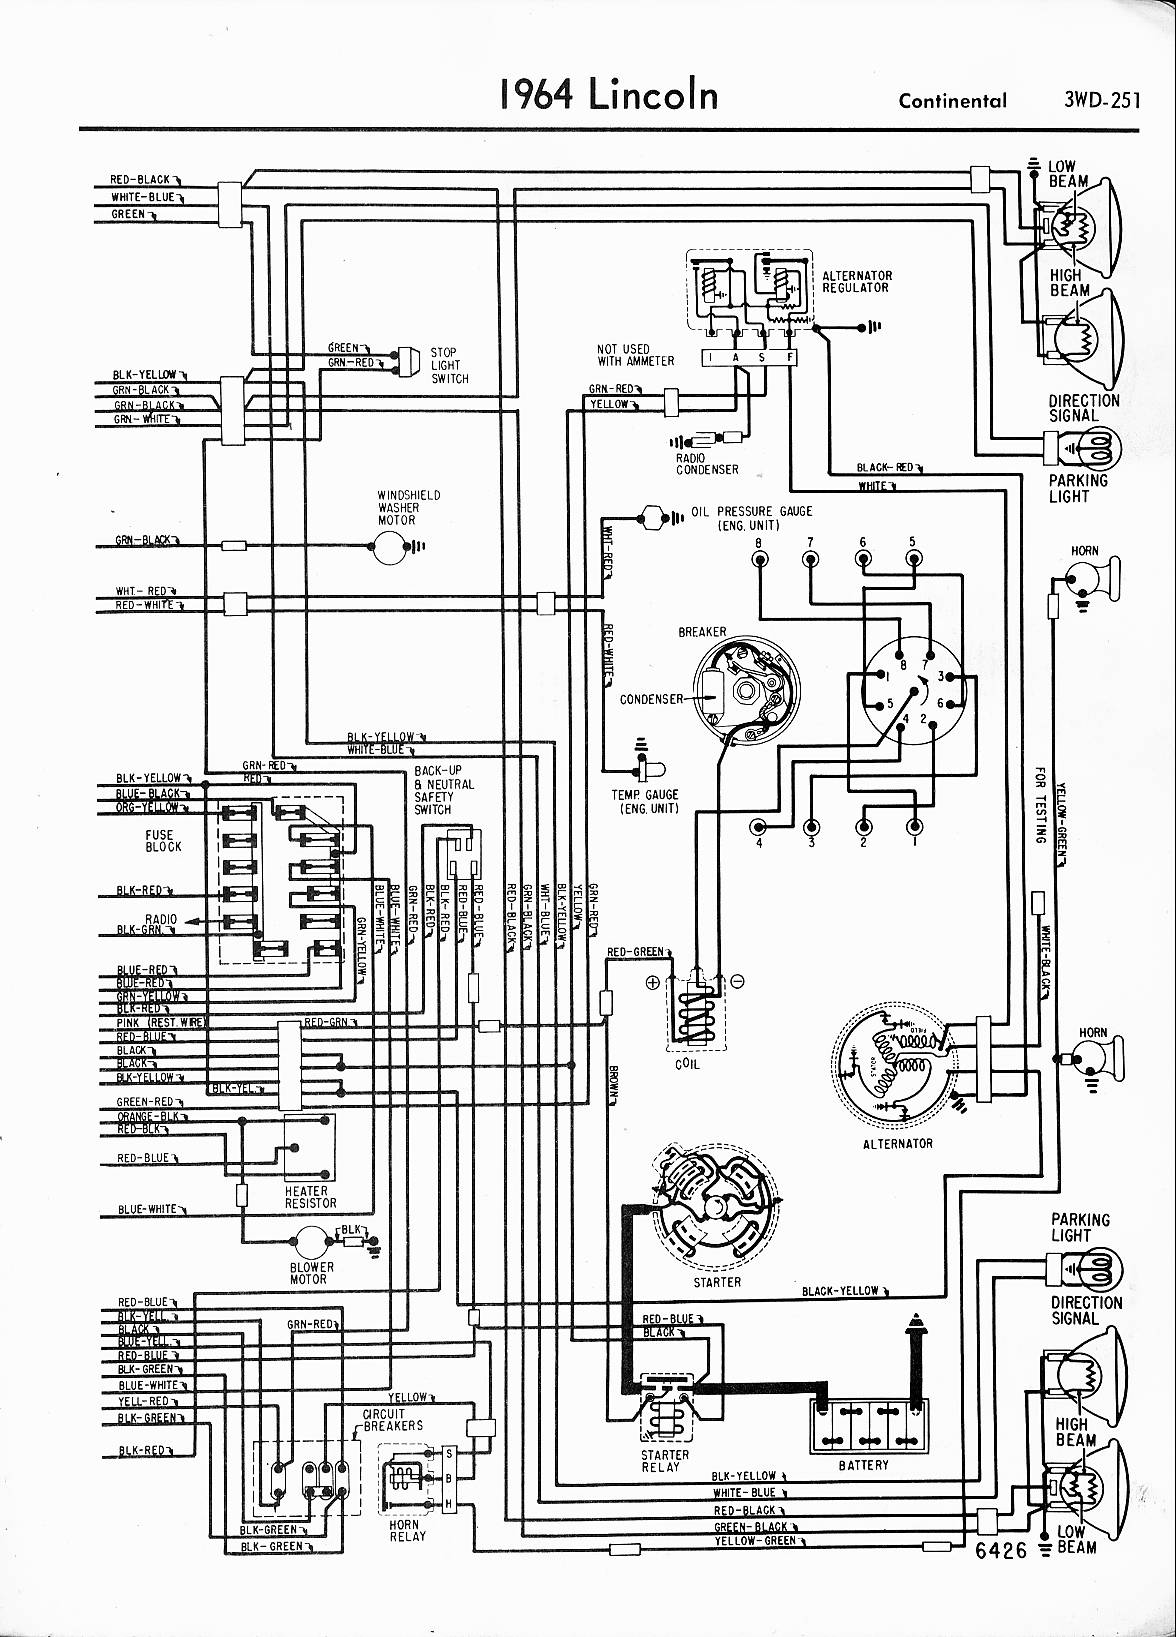 1966 lincoln wiring diagram diy enthusiasts wiring diagrams u2022 rh broadwaycomputers us 2004 Lincoln Navigator Wiring-Diagram Lincoln Wiring Diagrams Online